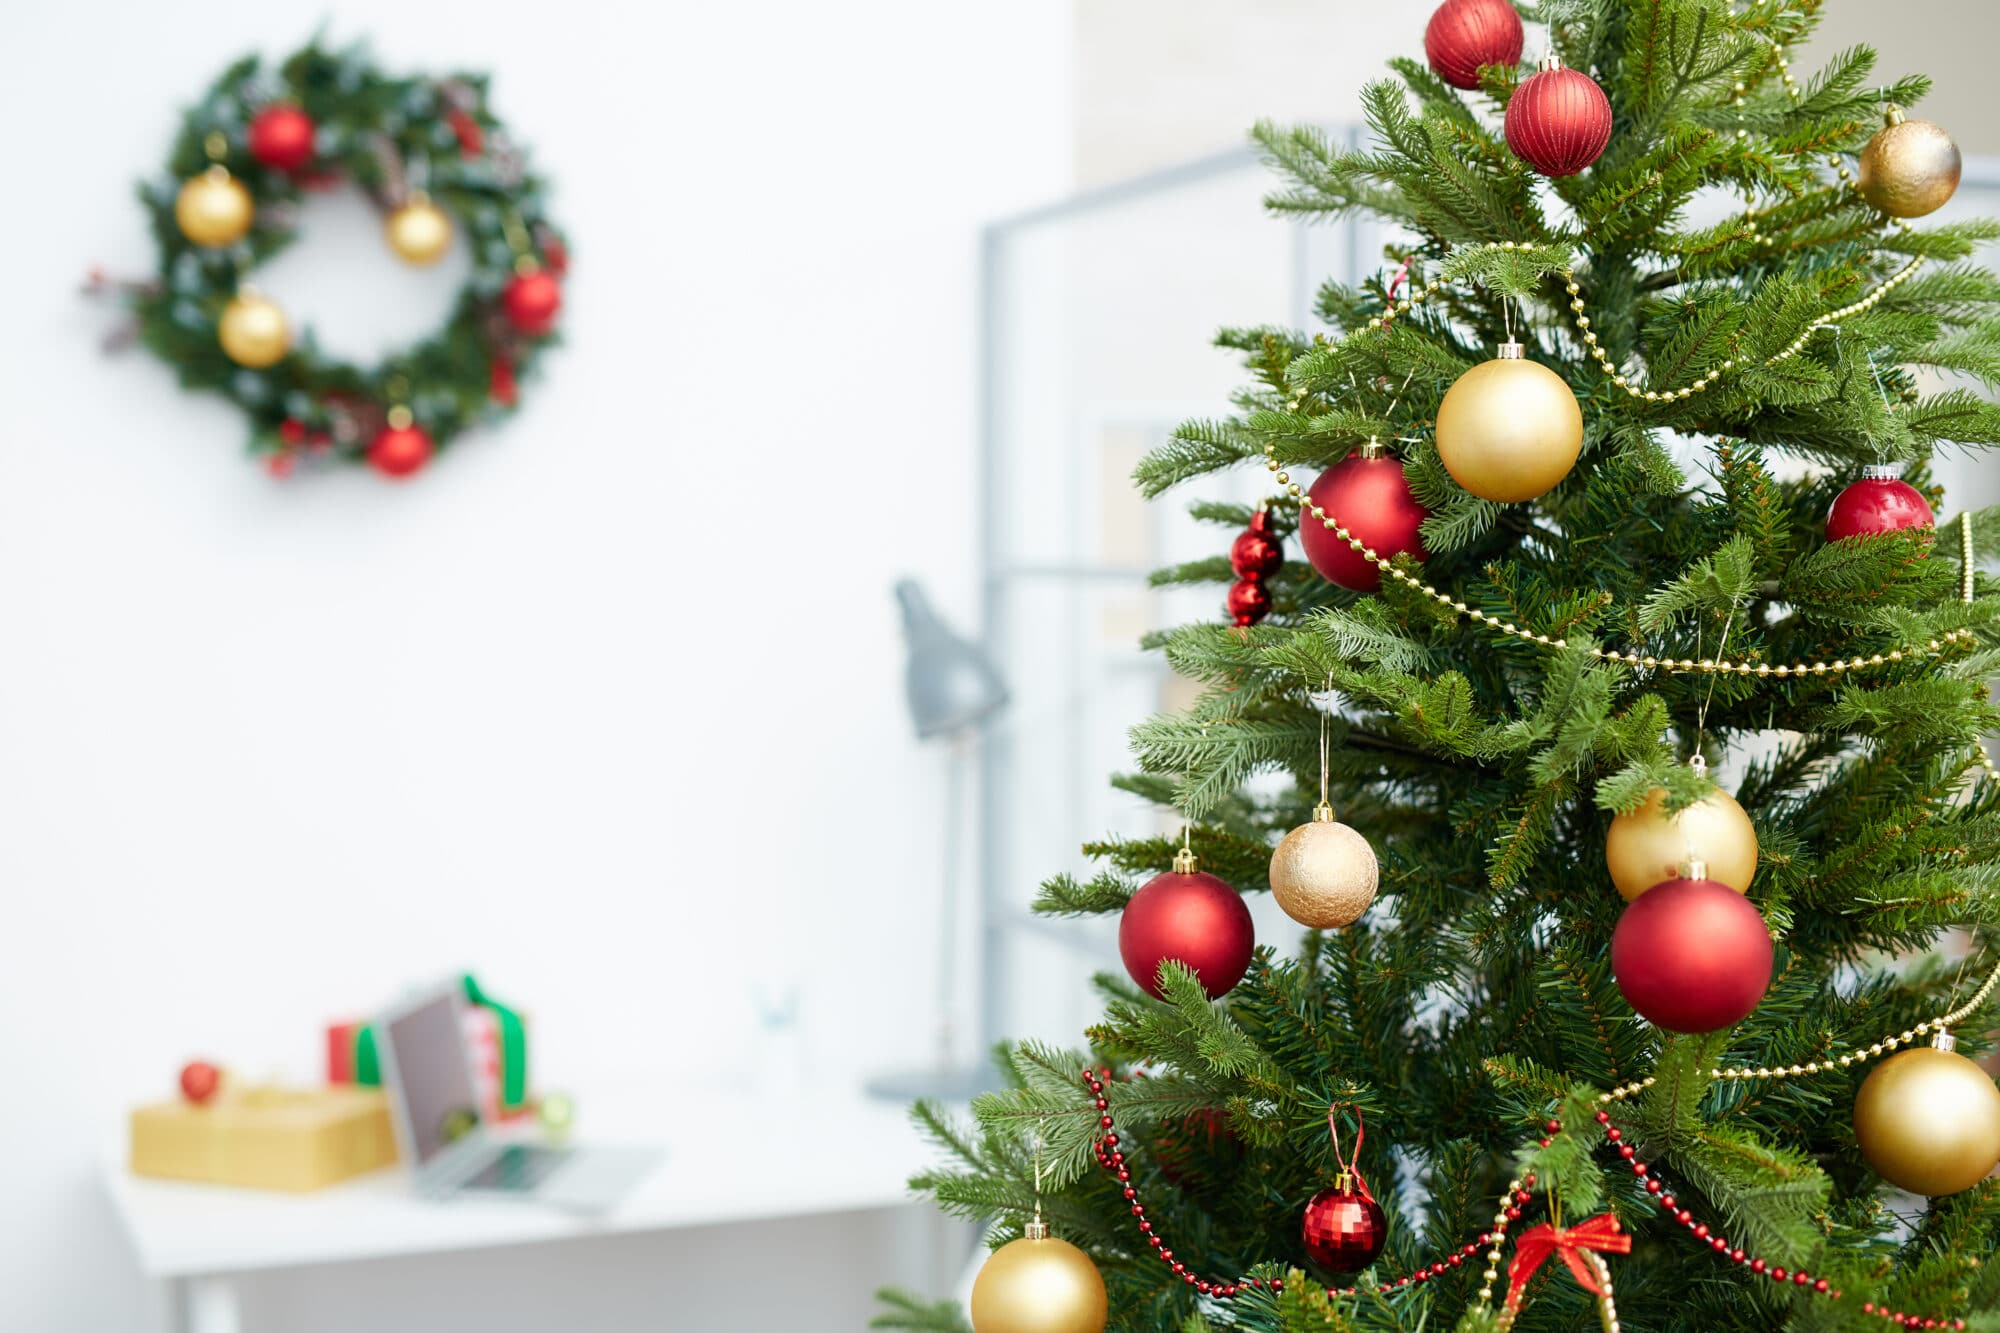 Christmas lights and wreaths are great office Christmas decorations that you can usually find for cheap online or in stores